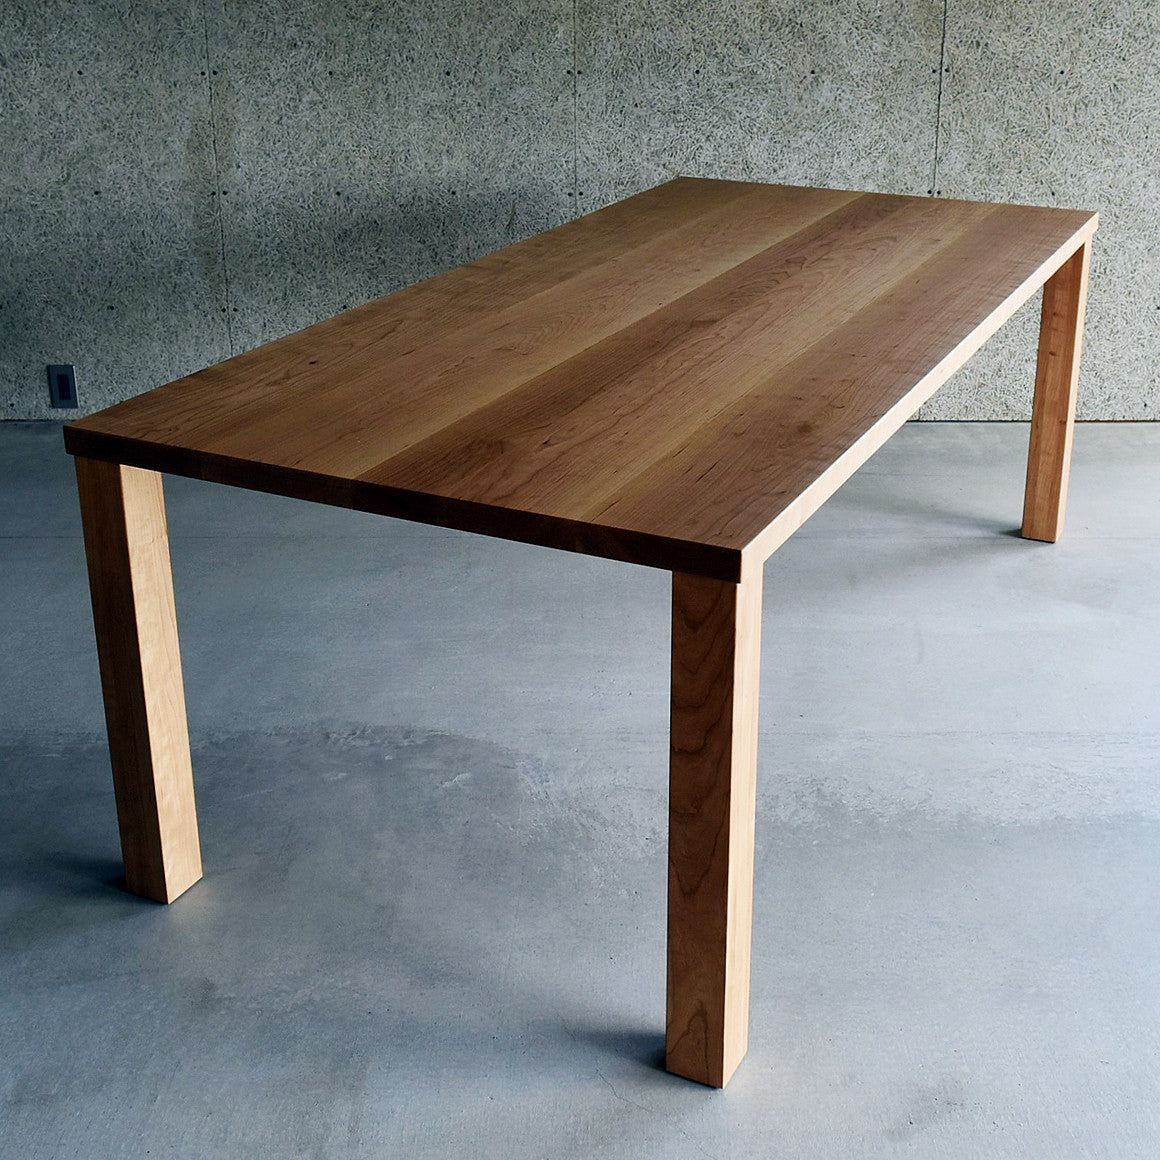 Nagano Interior - LinX Dining Table DT613 - Dining Table